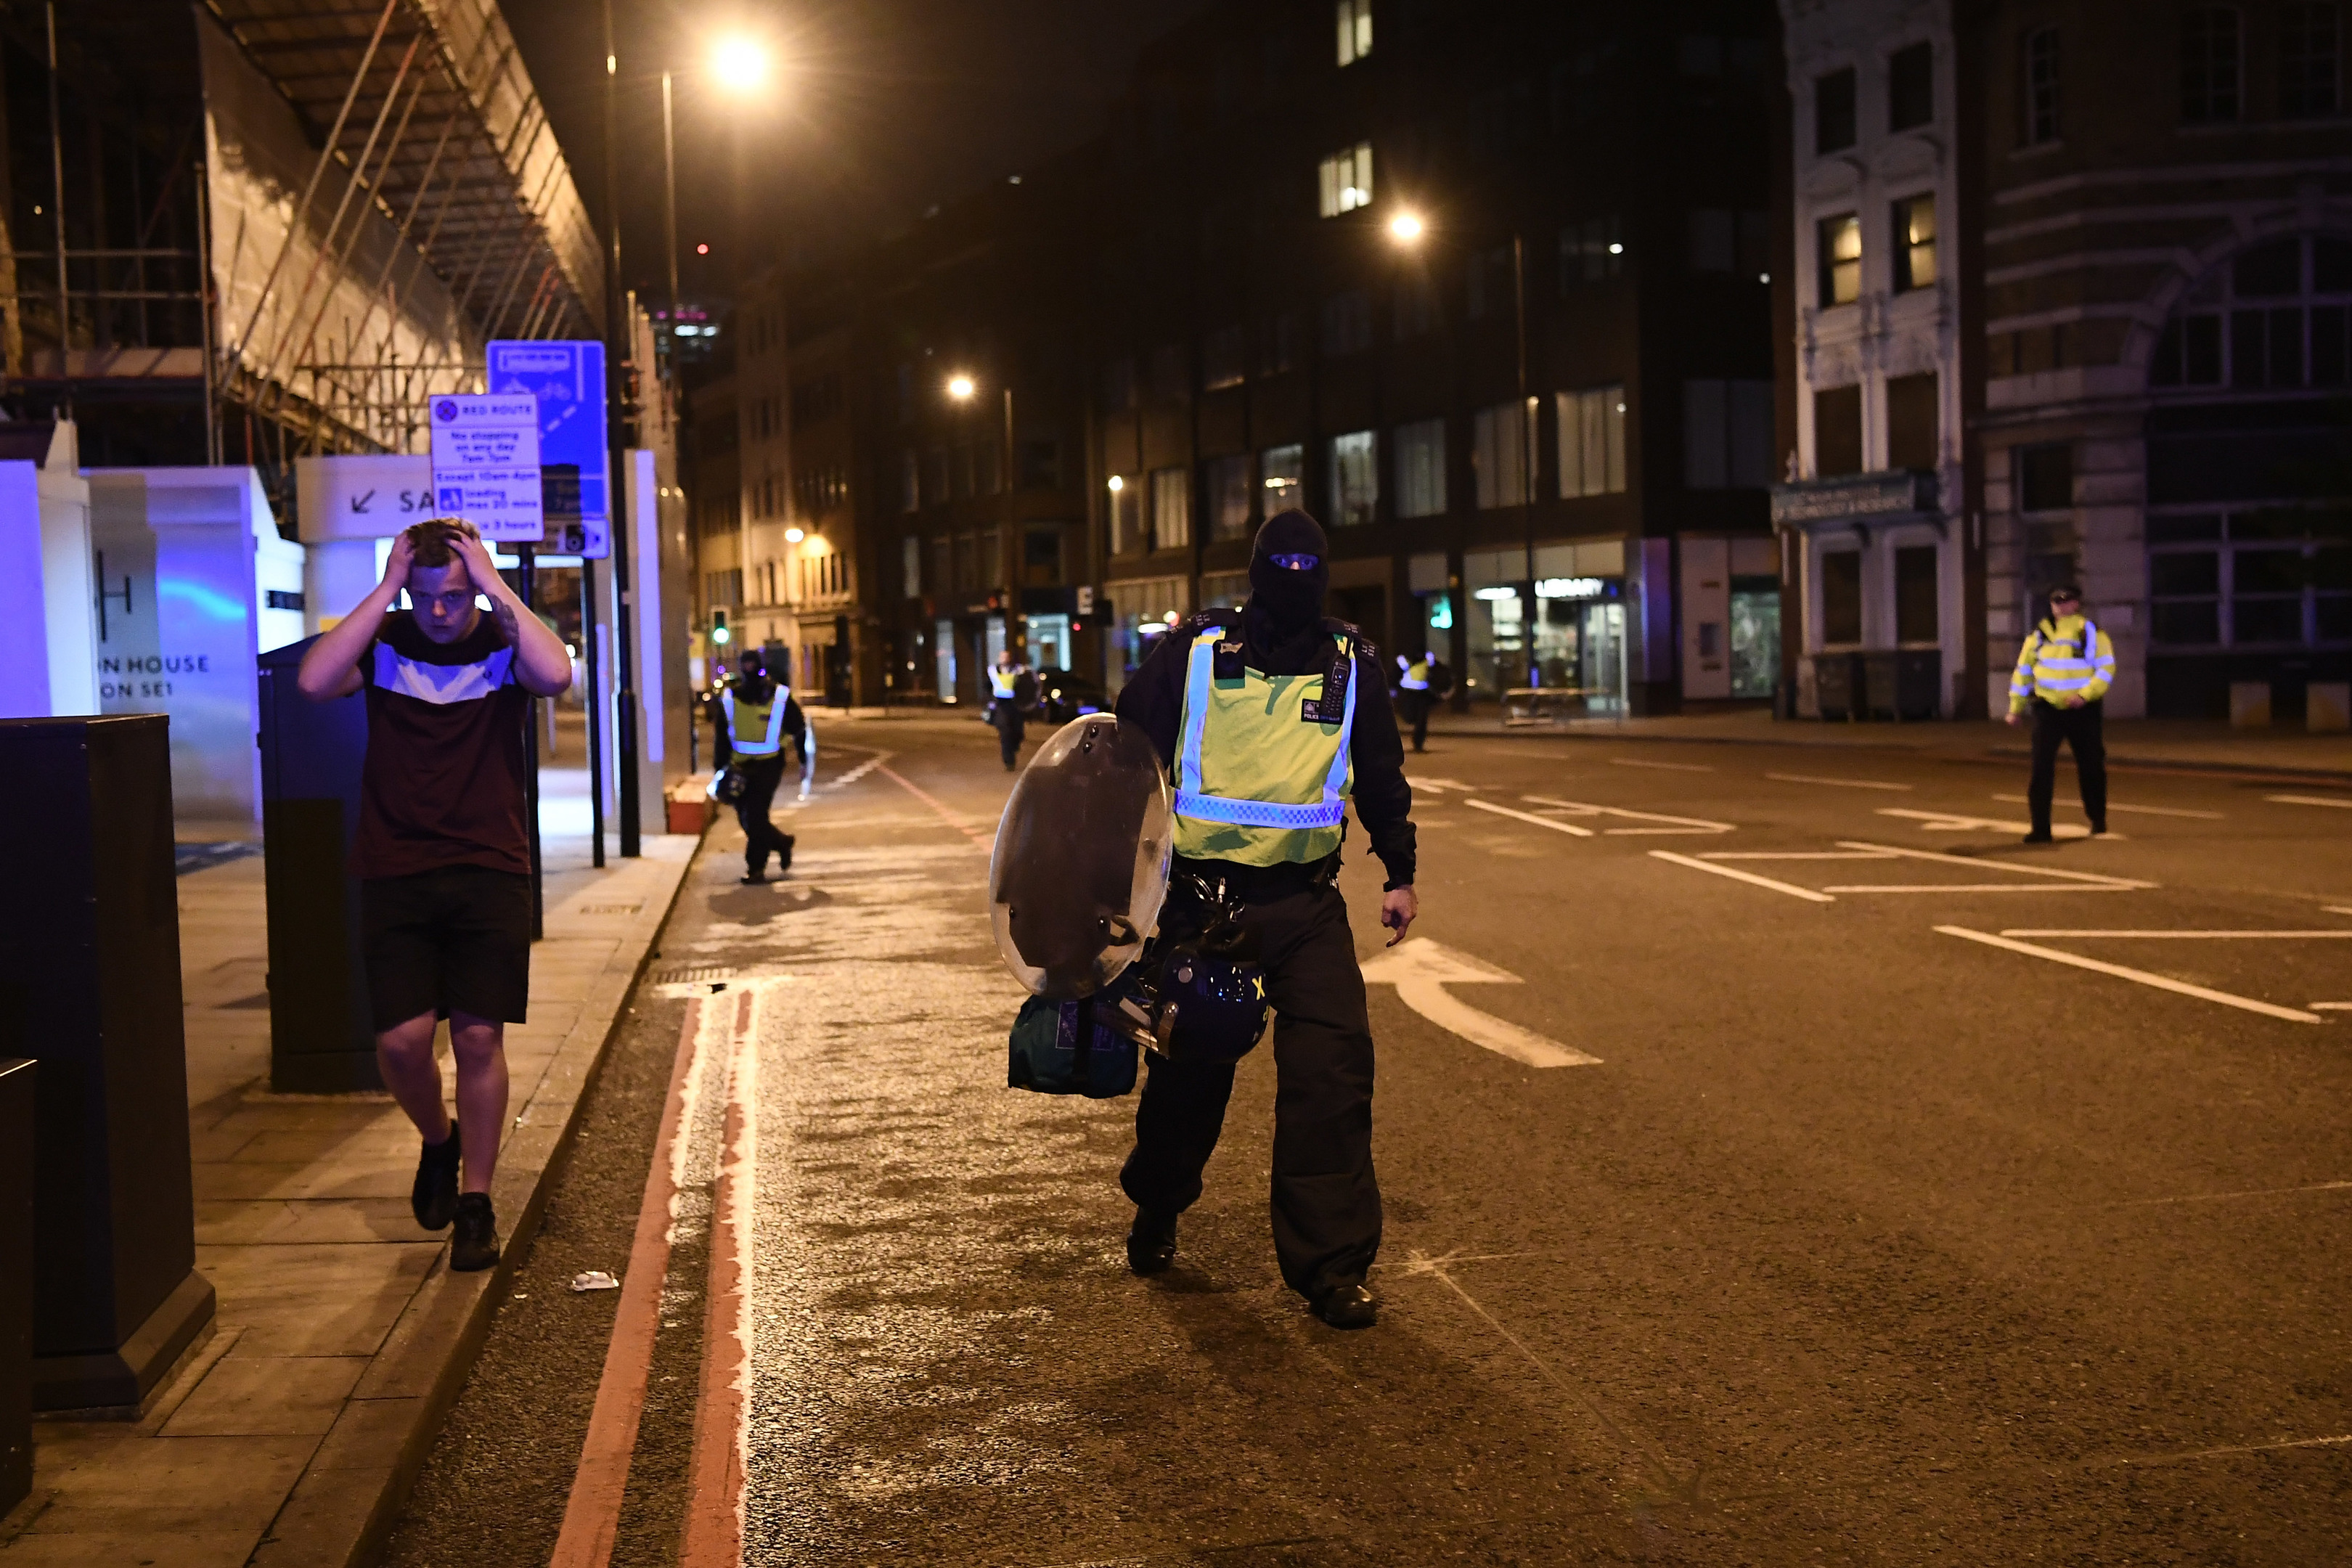 Police officers clear the area near Borough market, London (Carl Court/Getty Images)